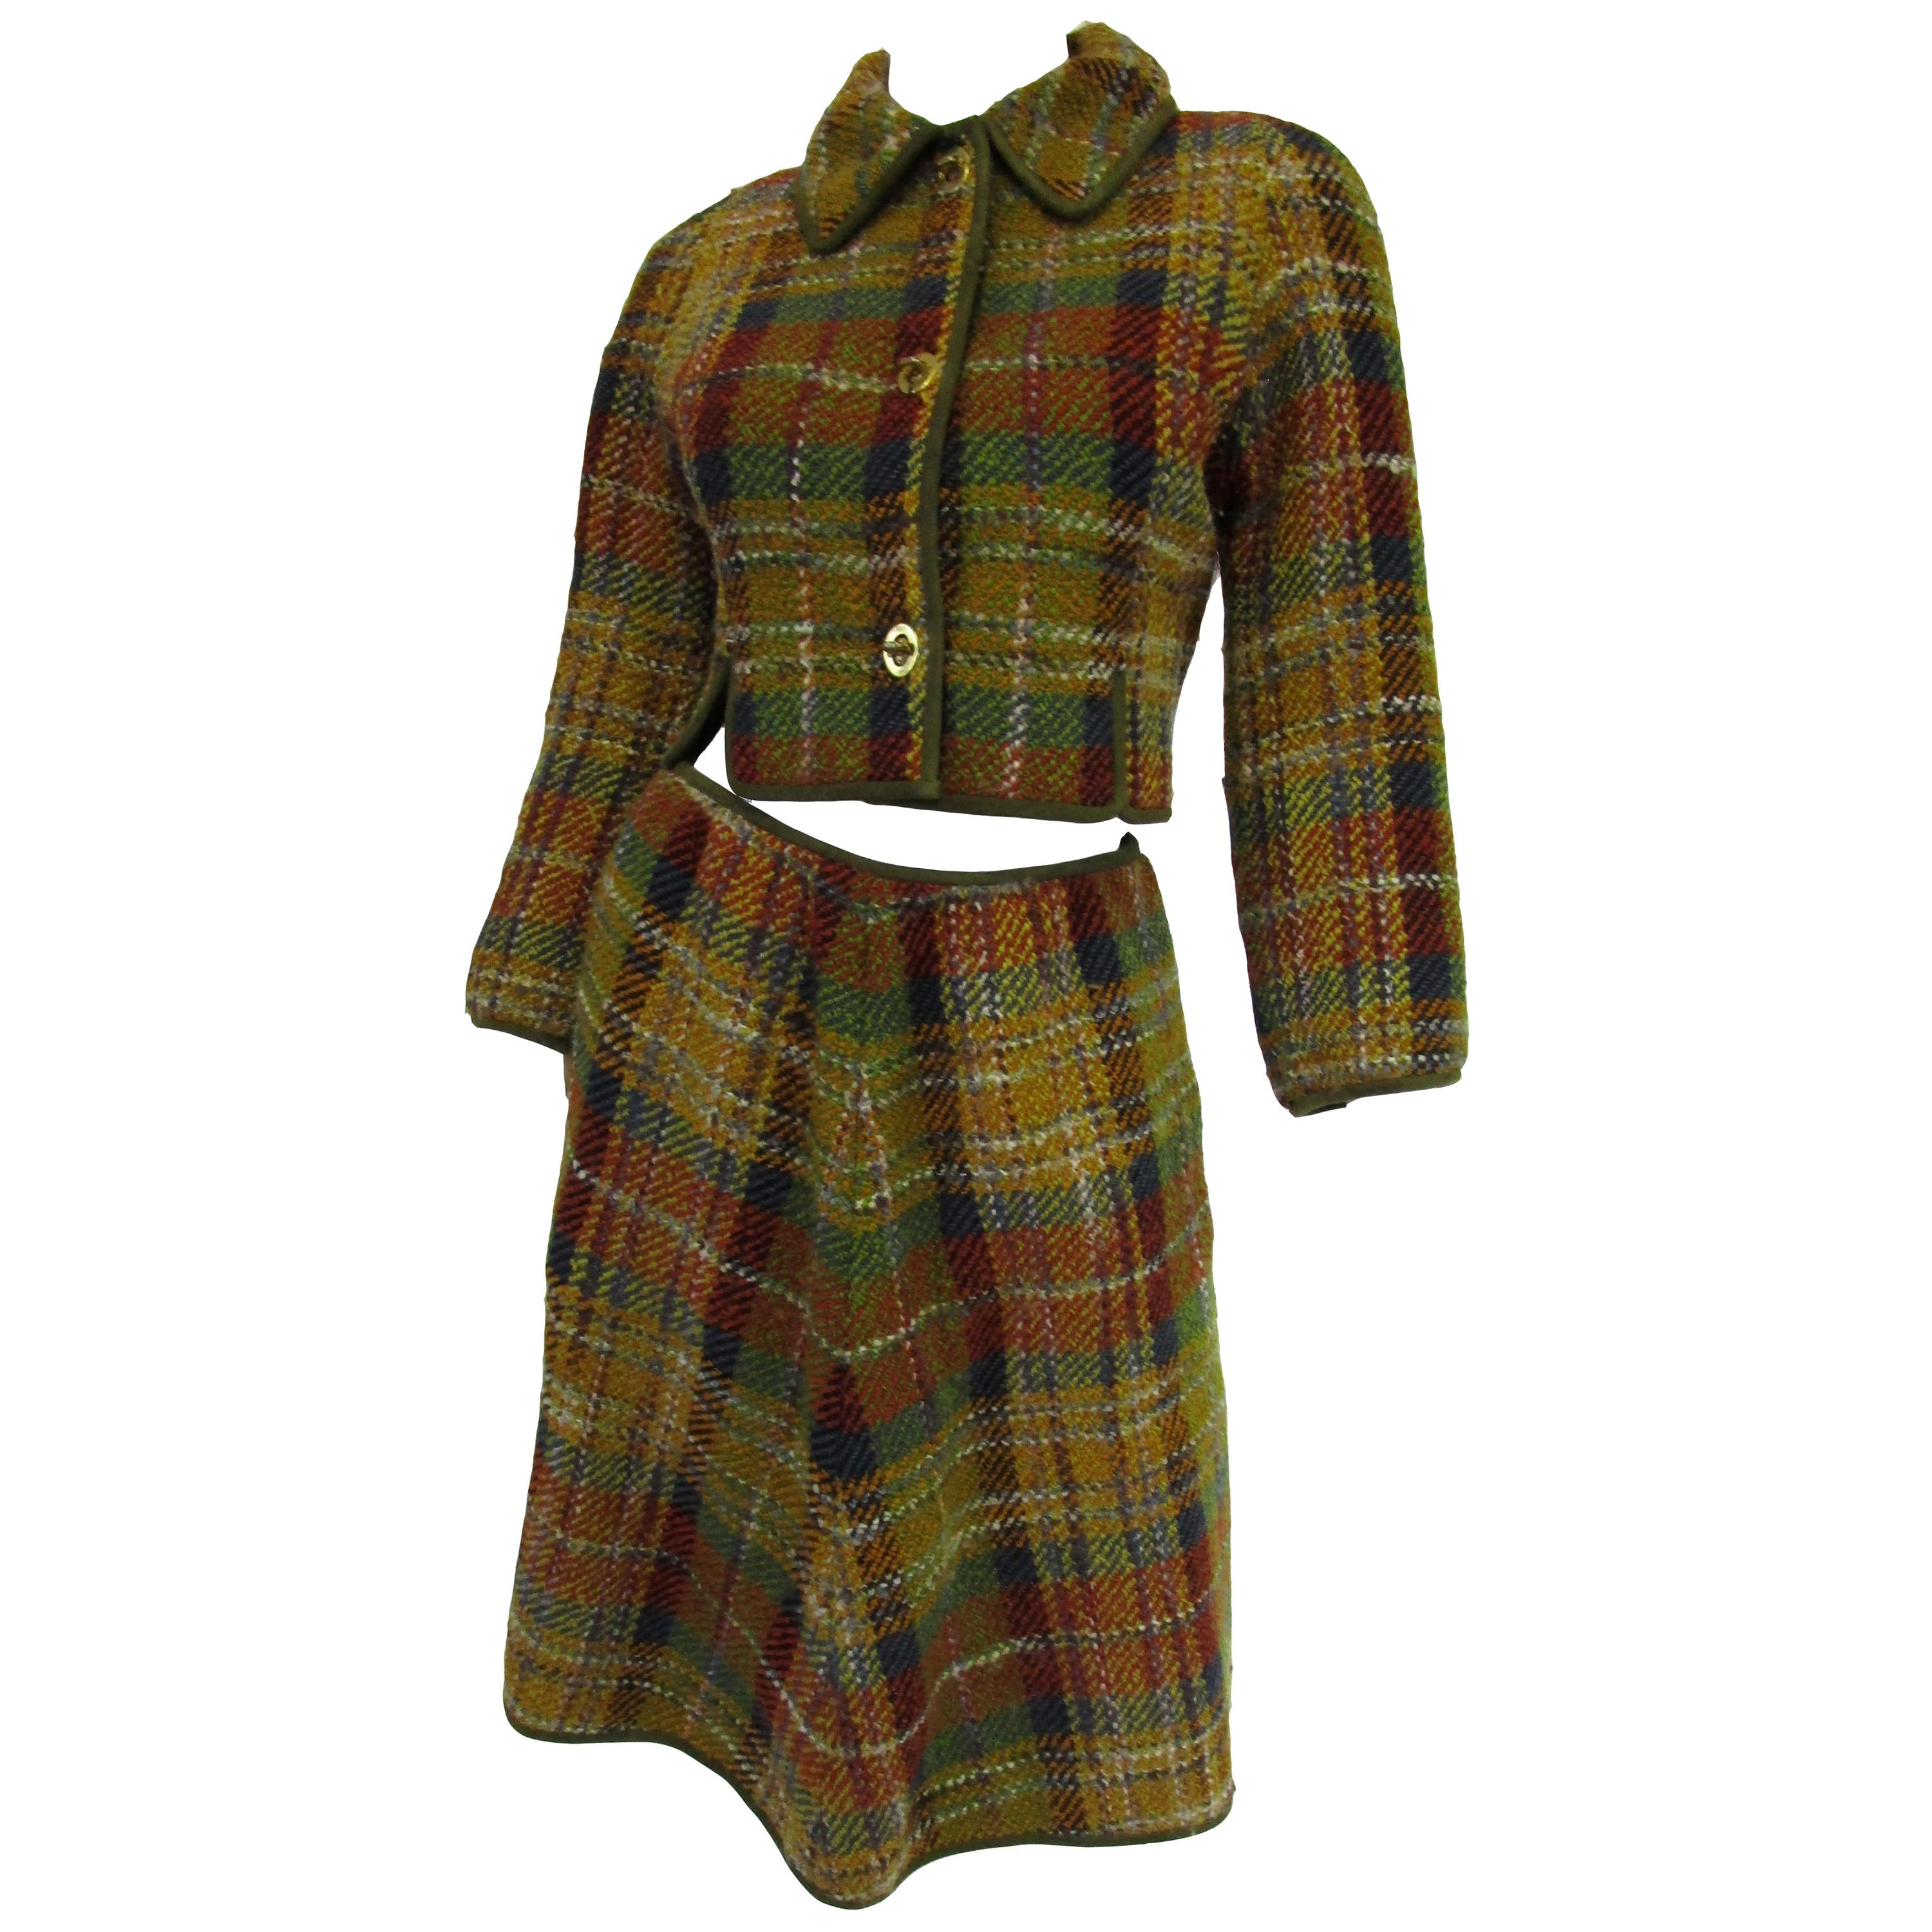 1960s Bonnie Cashin Polychromatic Wool, Suede, and Brass Skirt Suit